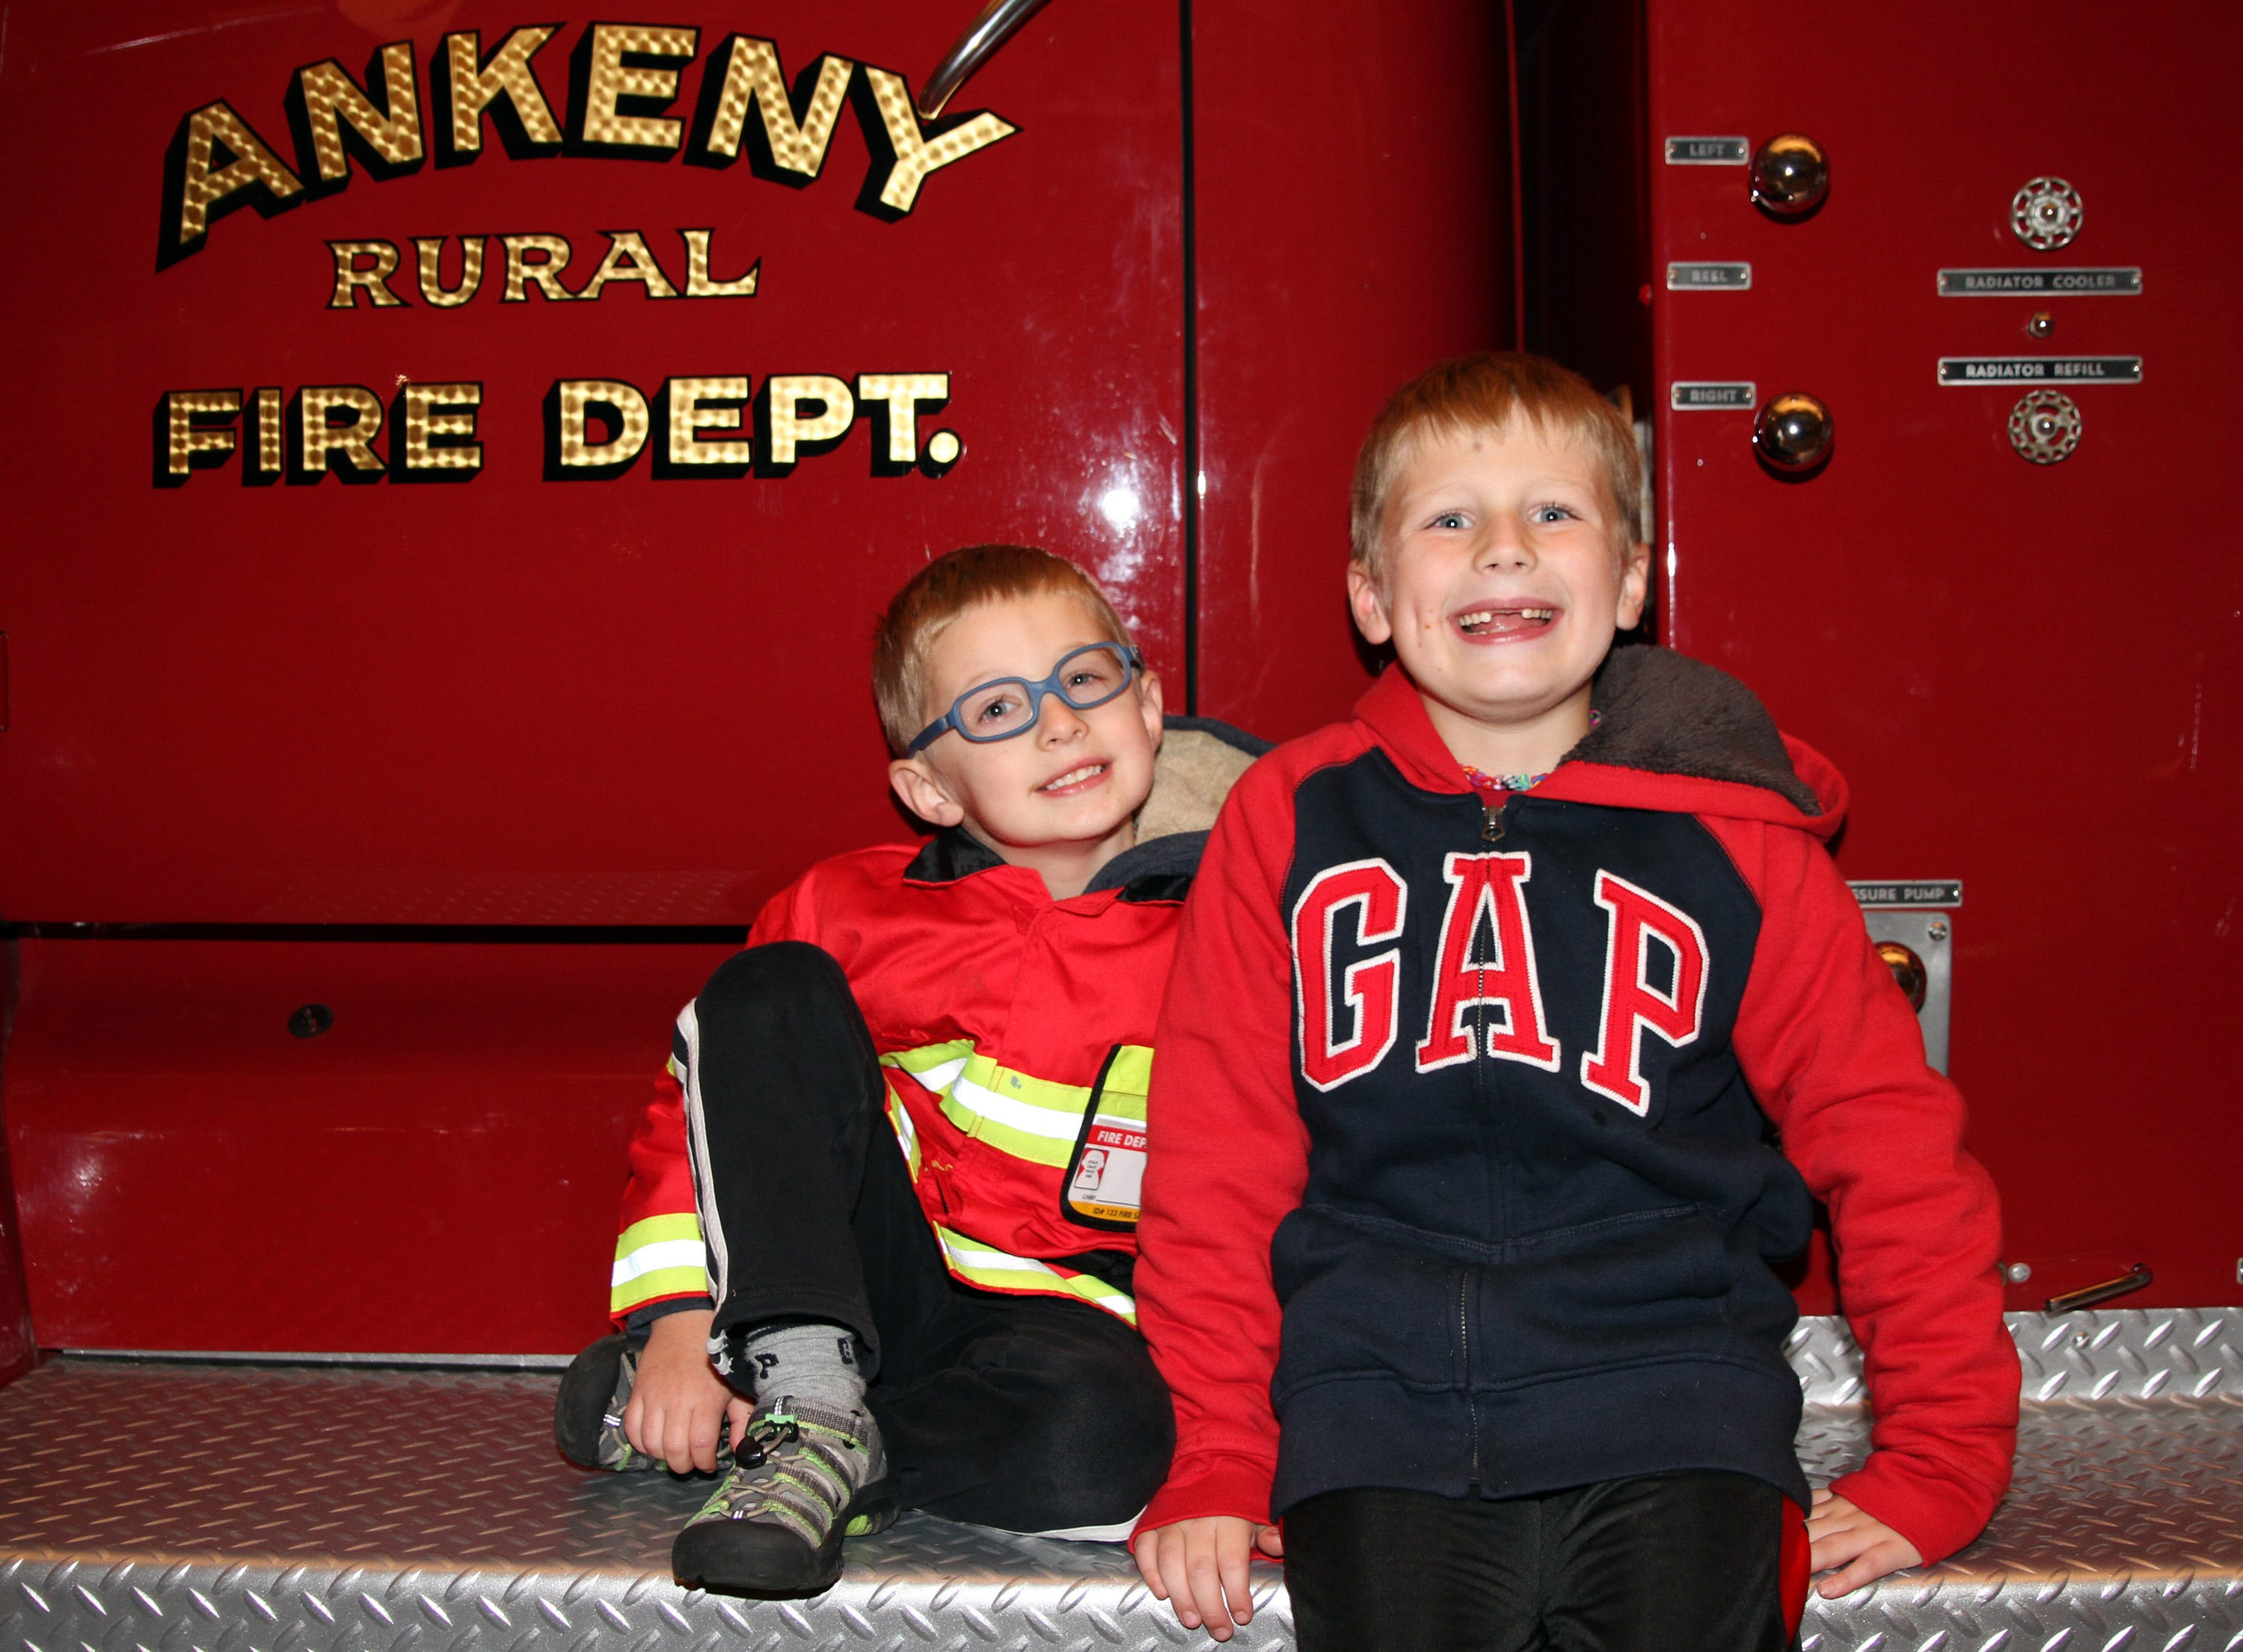 Brendan, 4, and Karter Meurer, 7, of Ankeny sit on the retired fire truck, Old 400, in the museum during the Ankeny Fire Department's Fire Prevention Week Open House on Wednesday, Oct. 10, 2018 at Fire Station #1, 120 N.W. Ash Dr. in Ankeny.